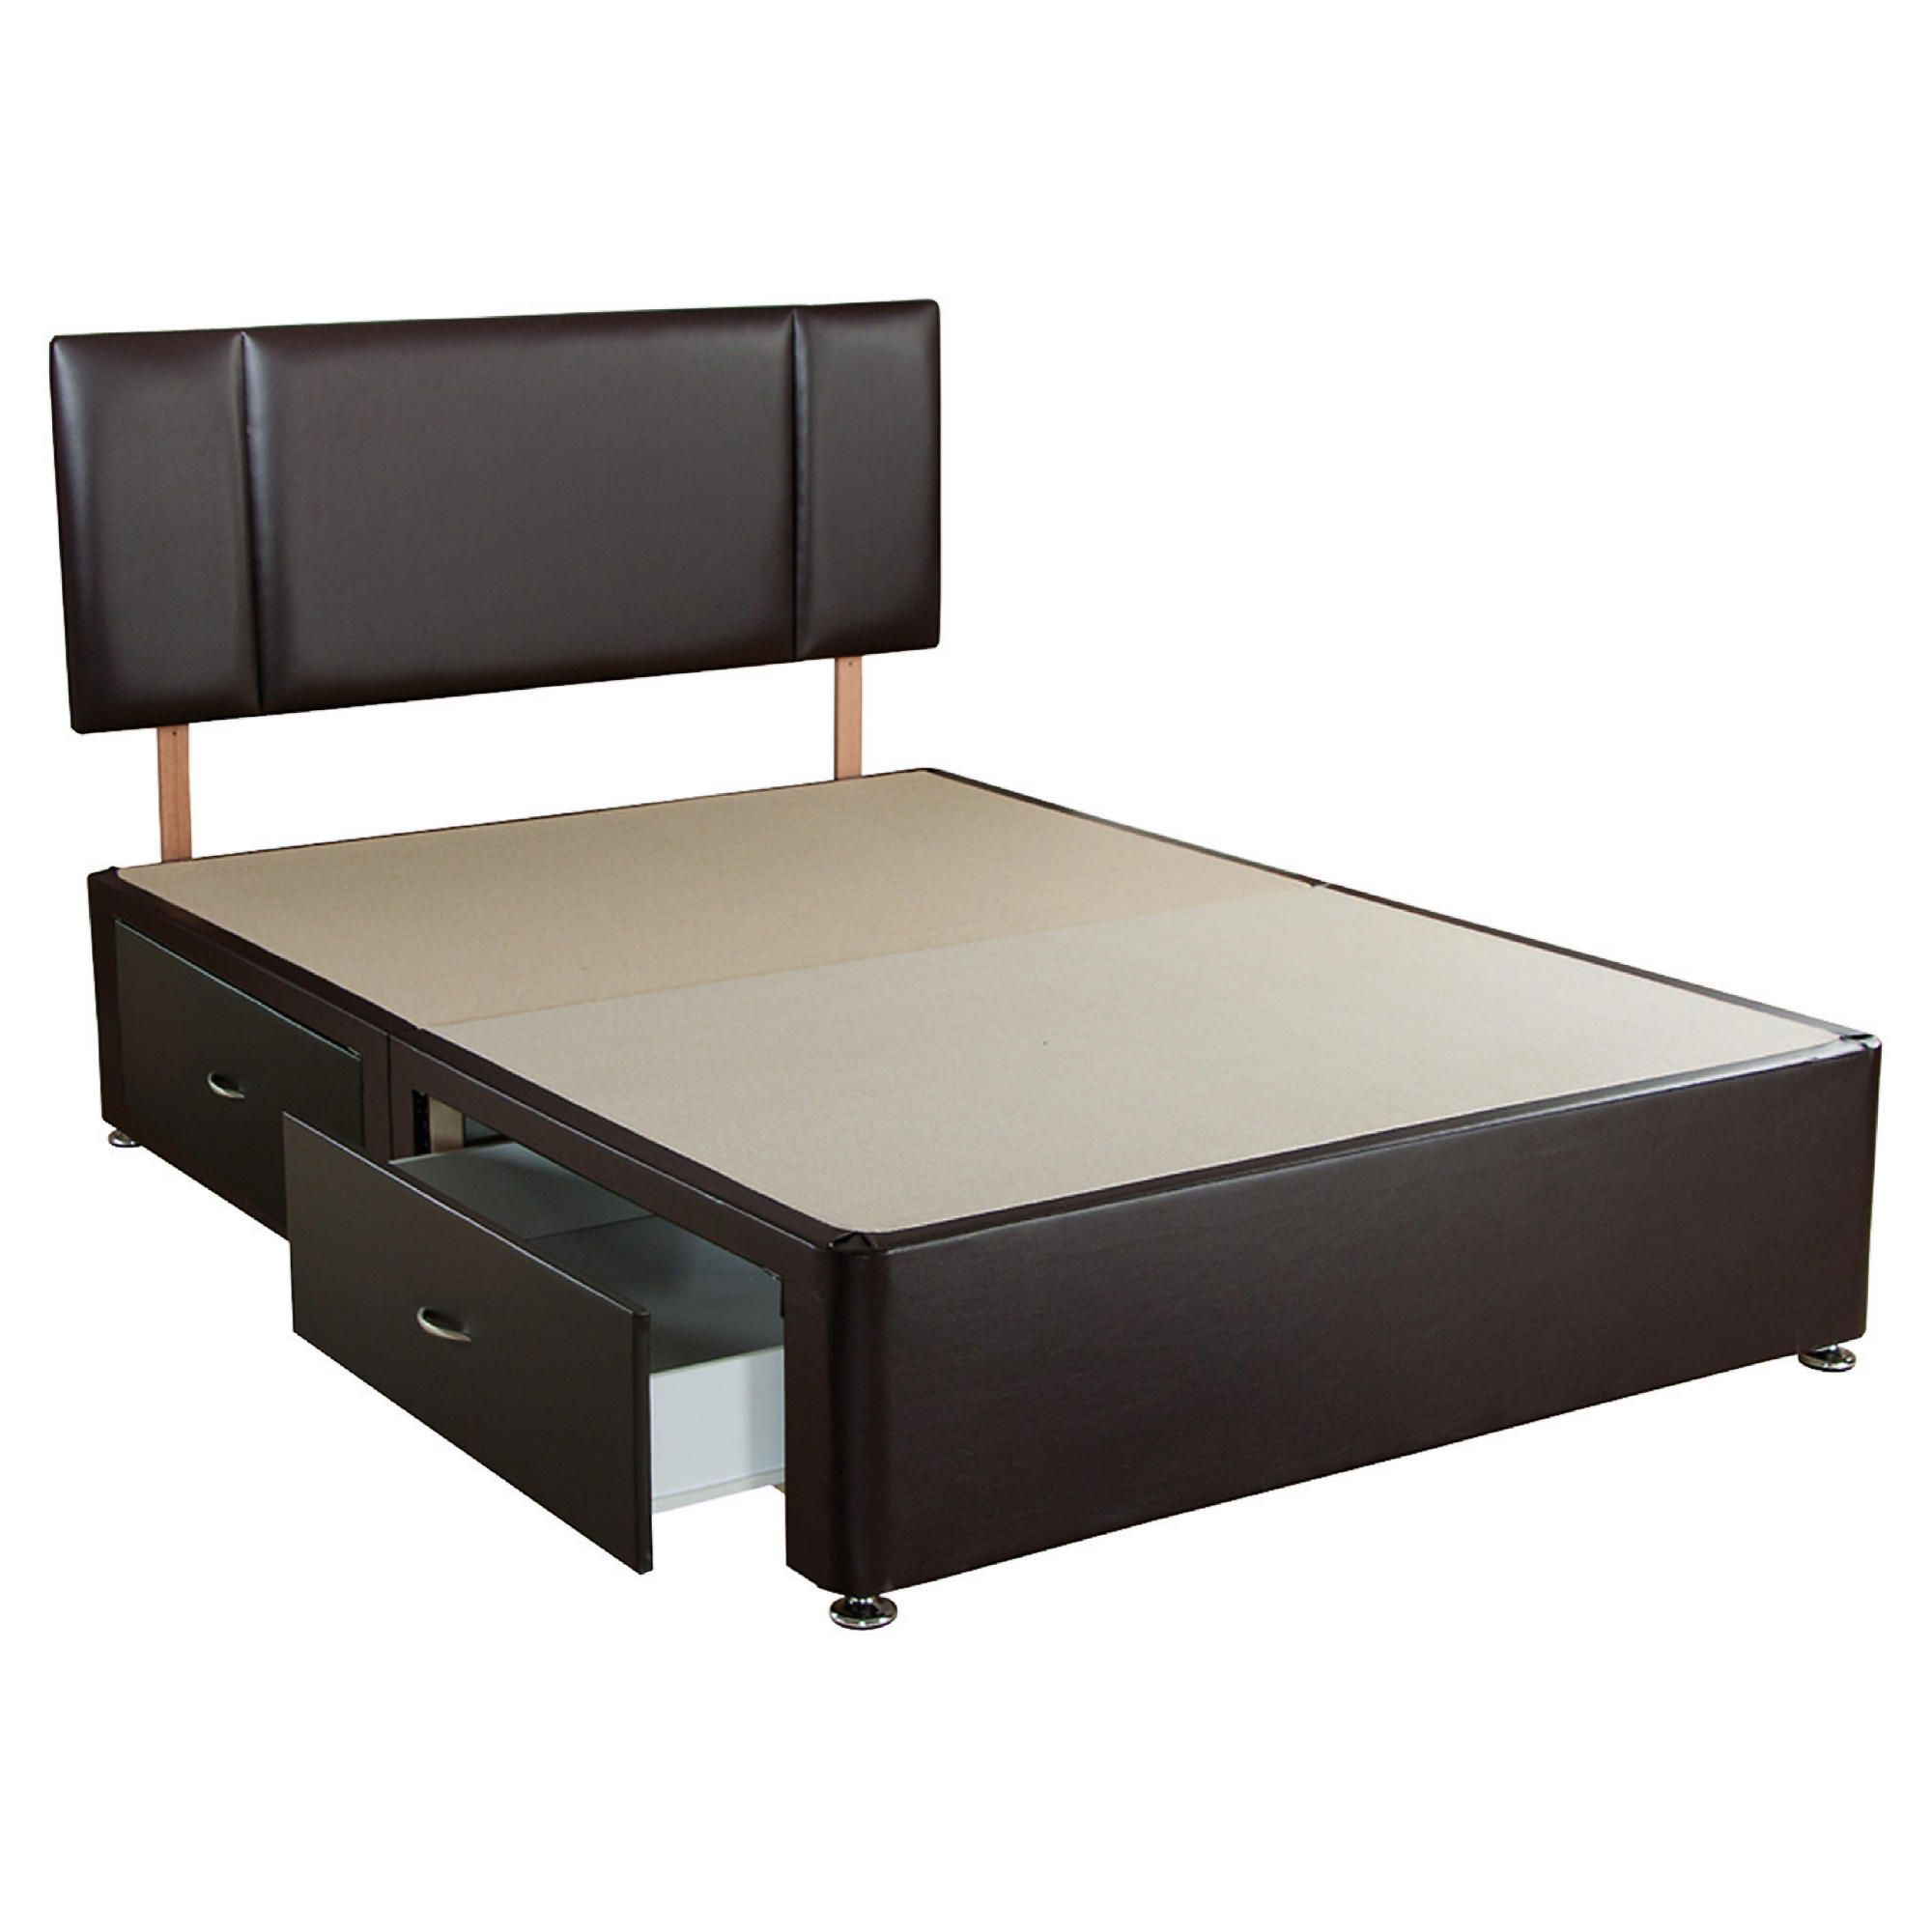 Home and garden furniture airsprung mercury trizone for Double divan bed with four drawers